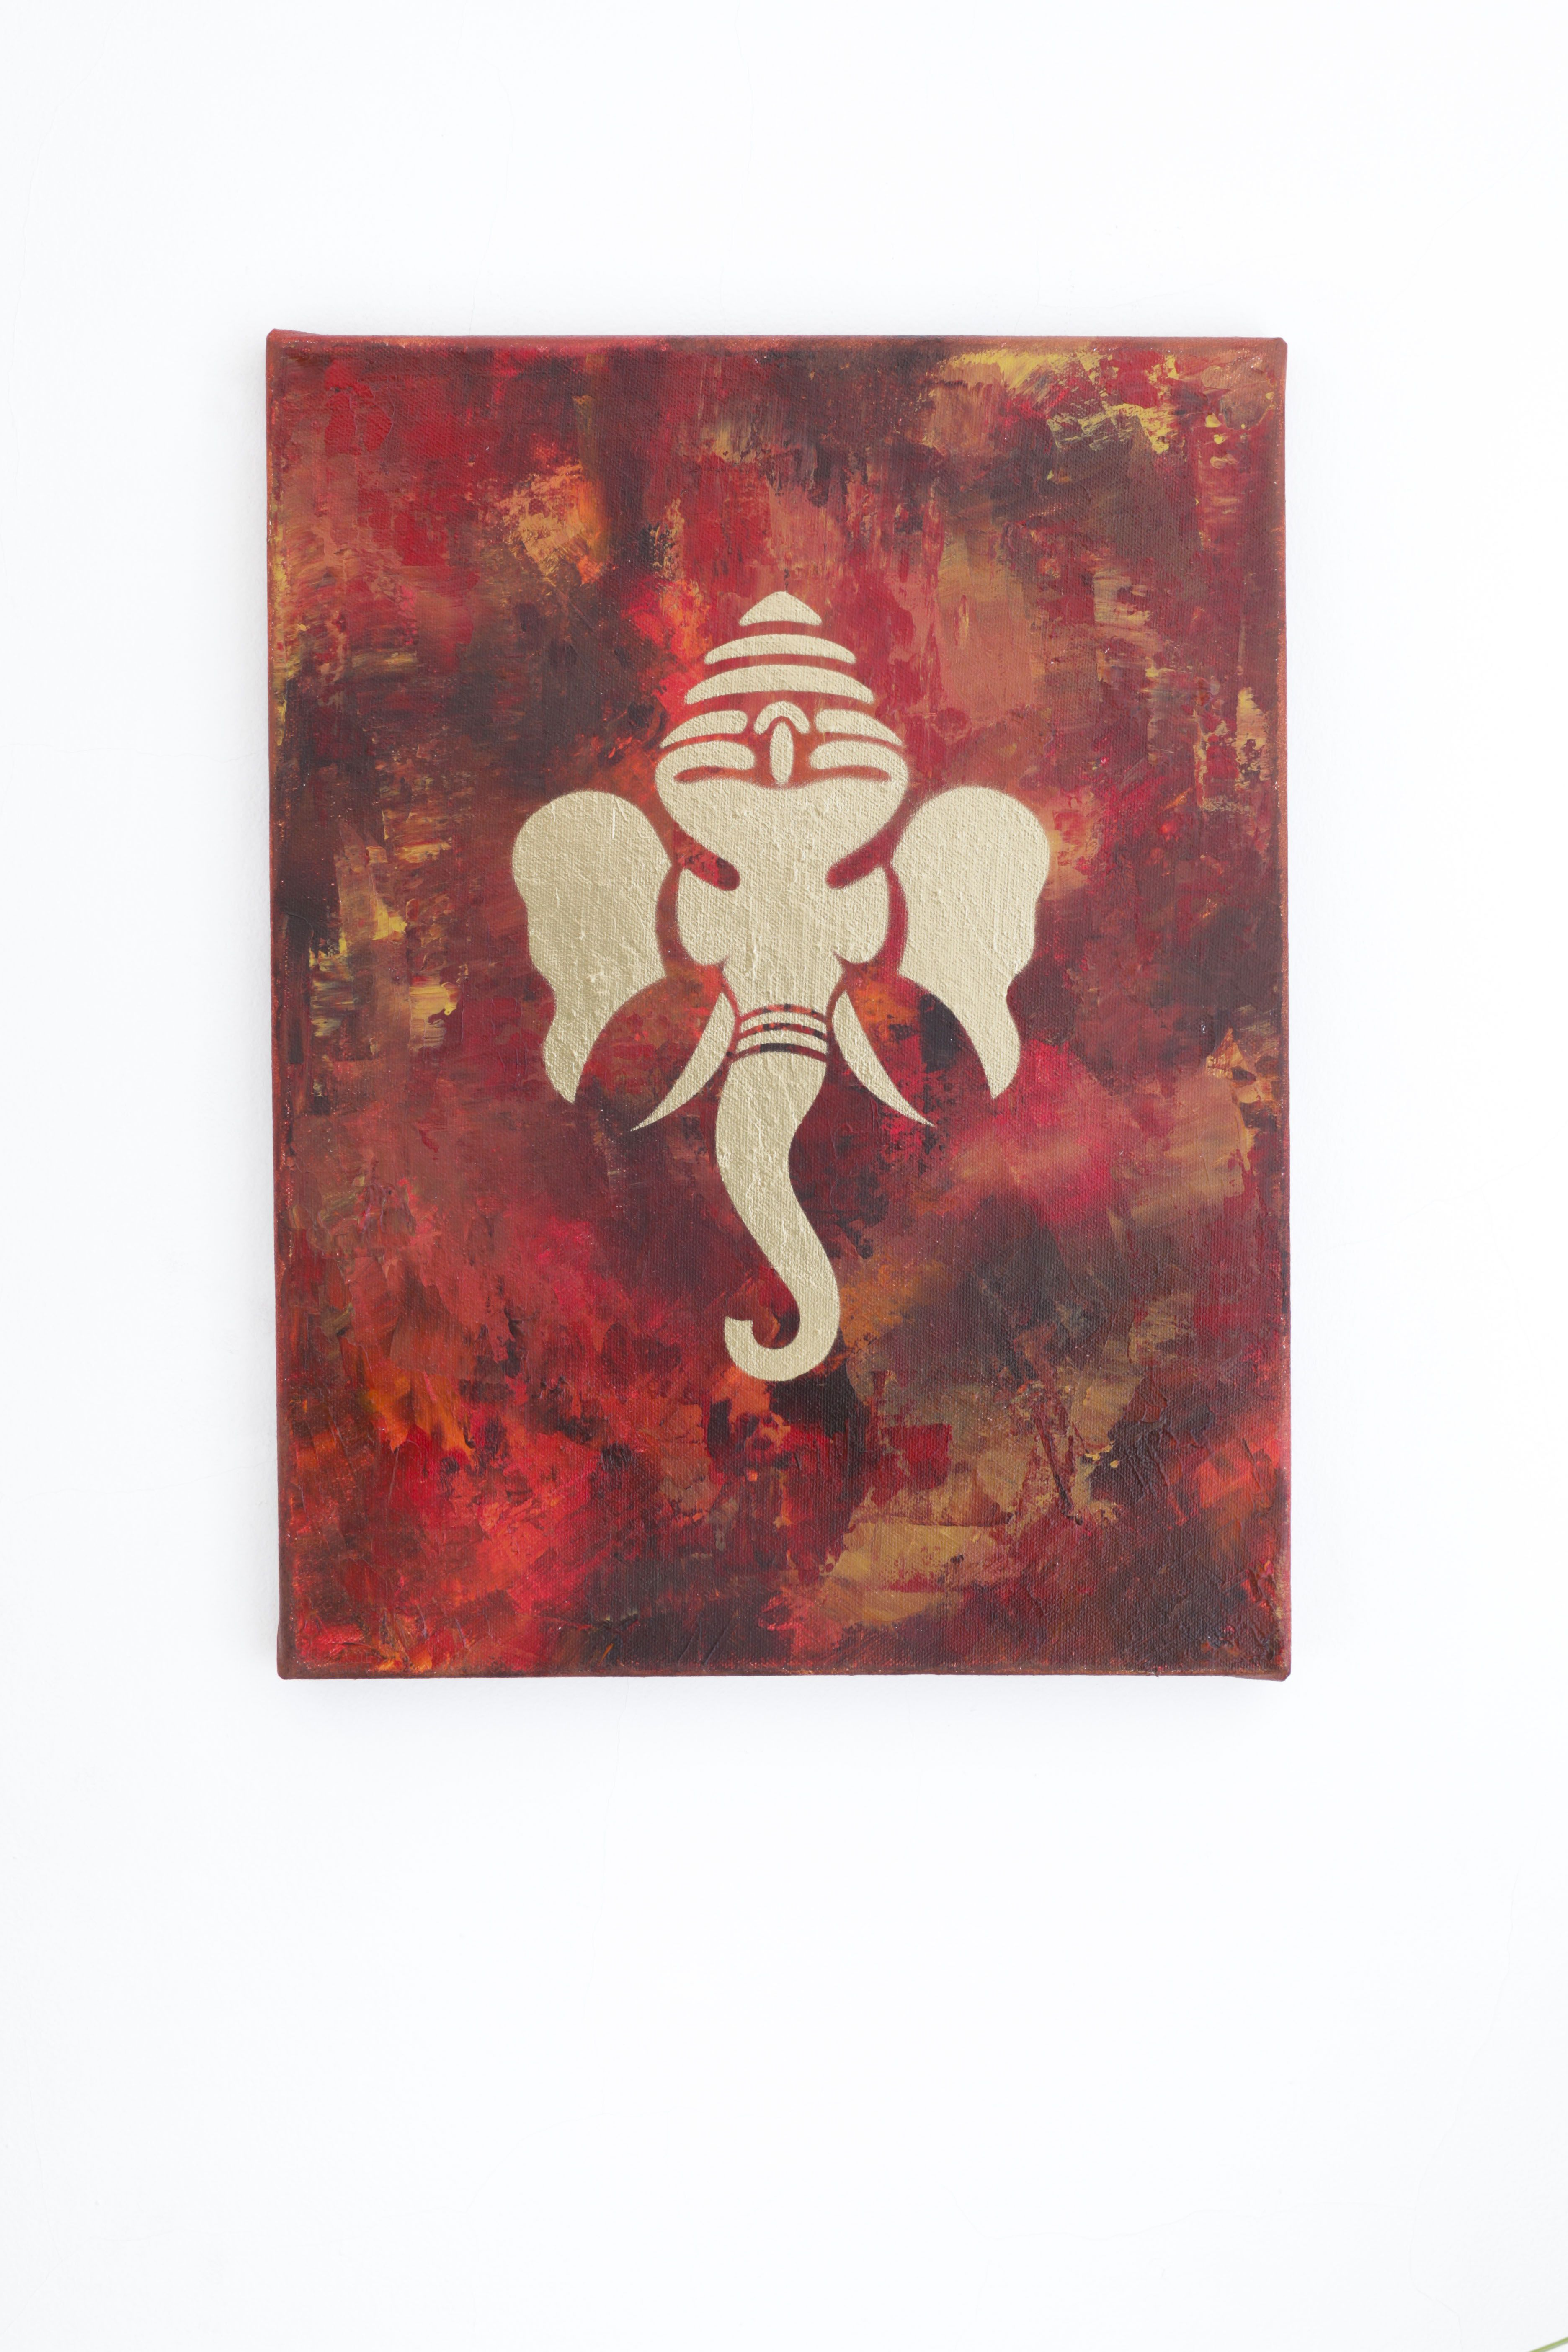 Lord ganesha multi color painting hd image - The Lord Ganesh Painting Which I Make See More Here Http